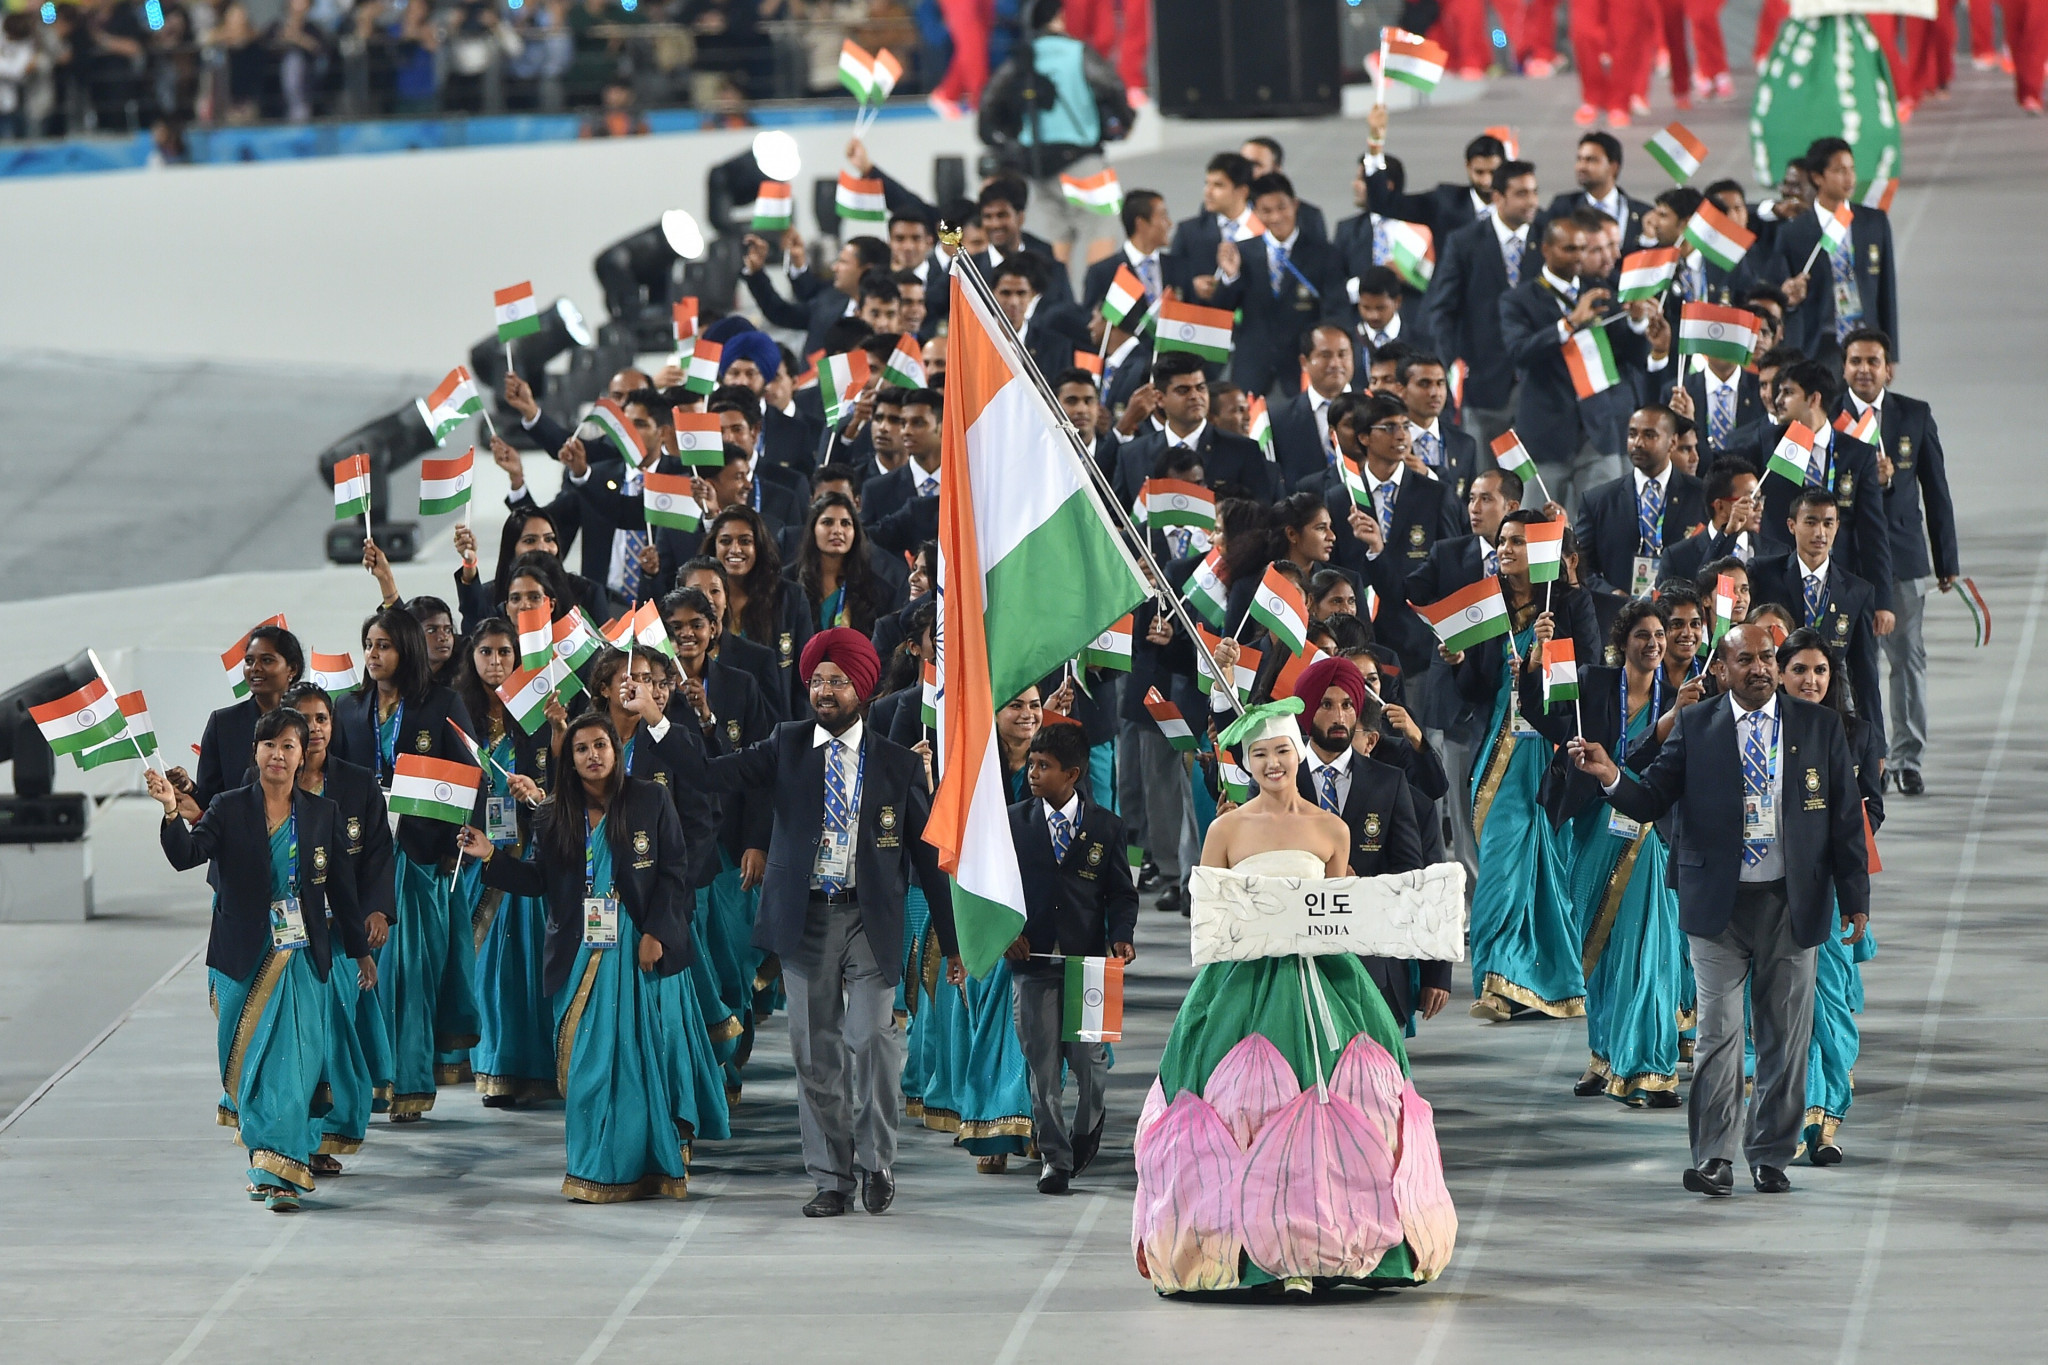 Hockey captain Sardar Singh carried India's flag at the Opening Ceremony of the 2014 Asian Games in Incheon ©Getty Images